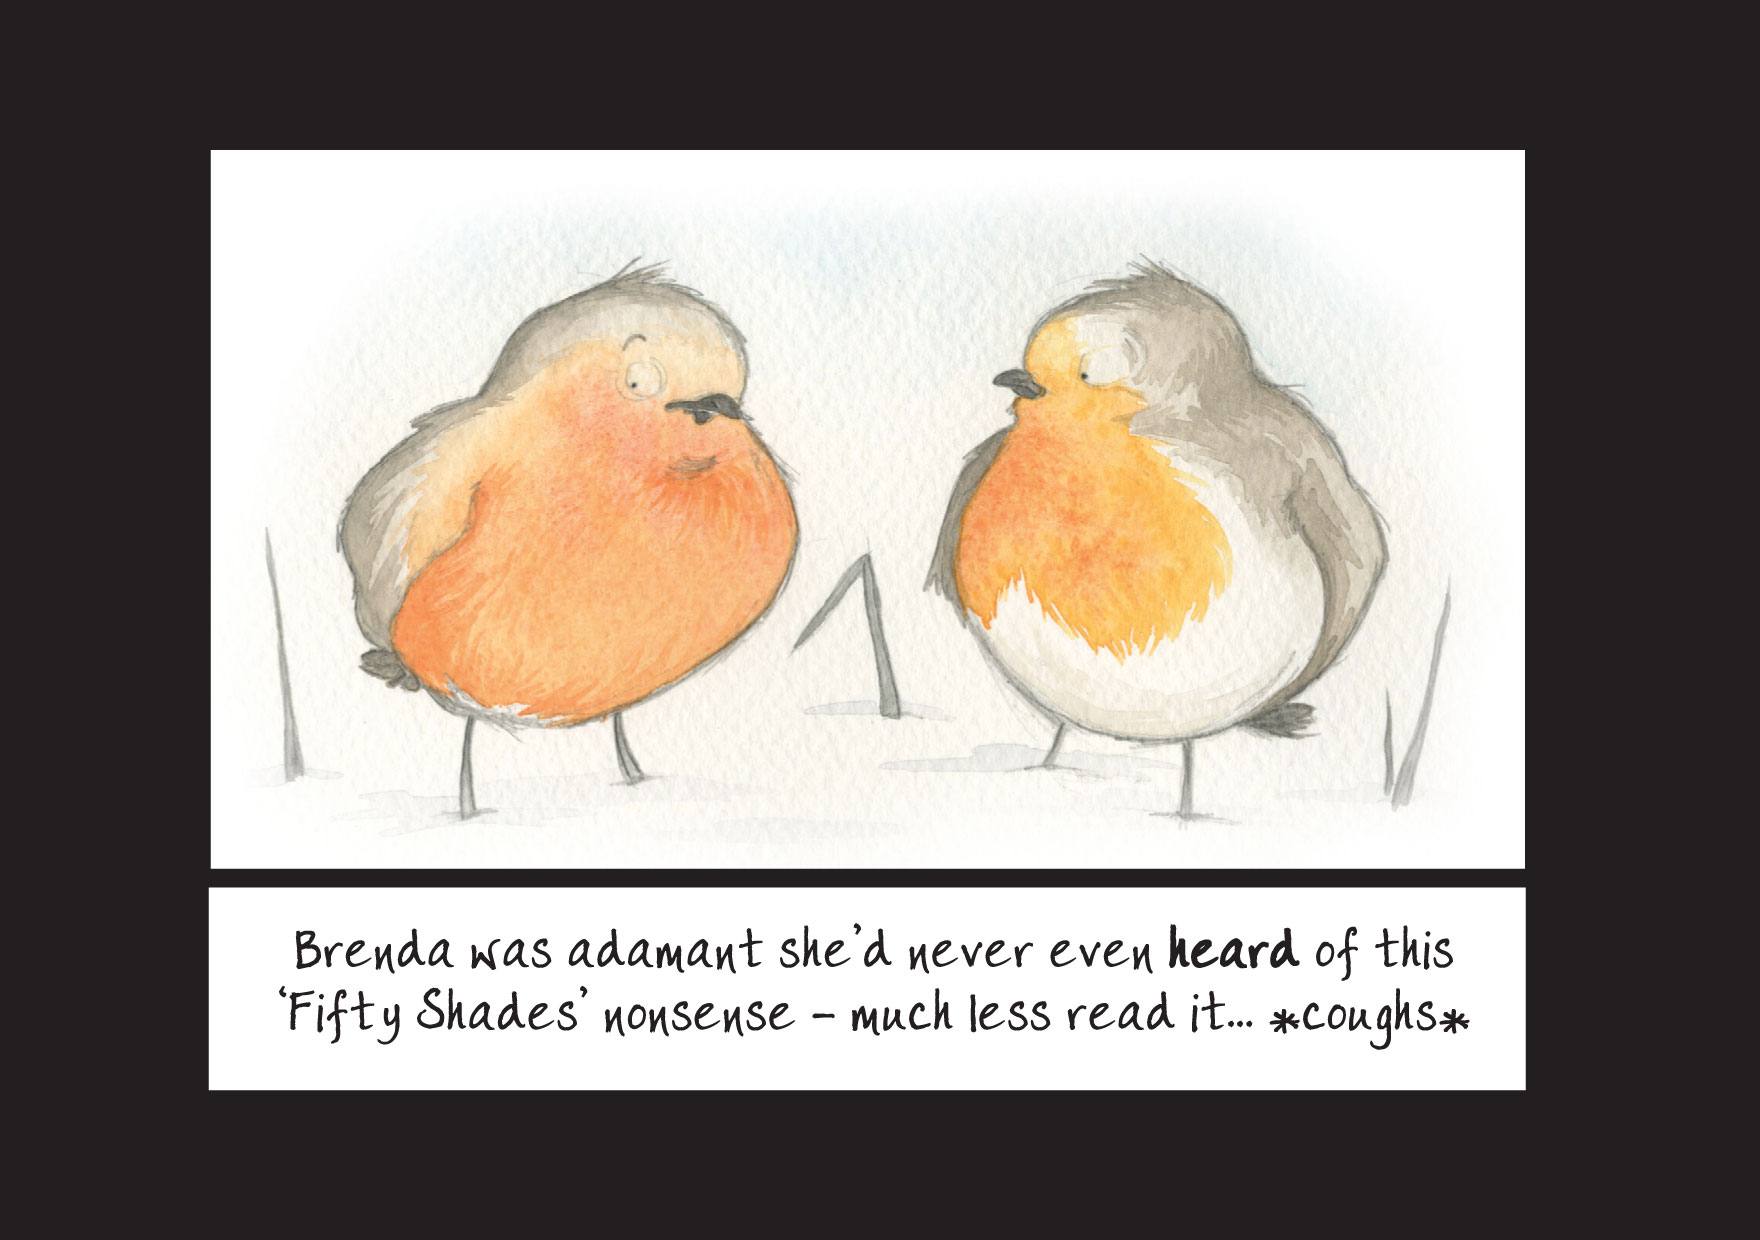 '50 Shades' robins